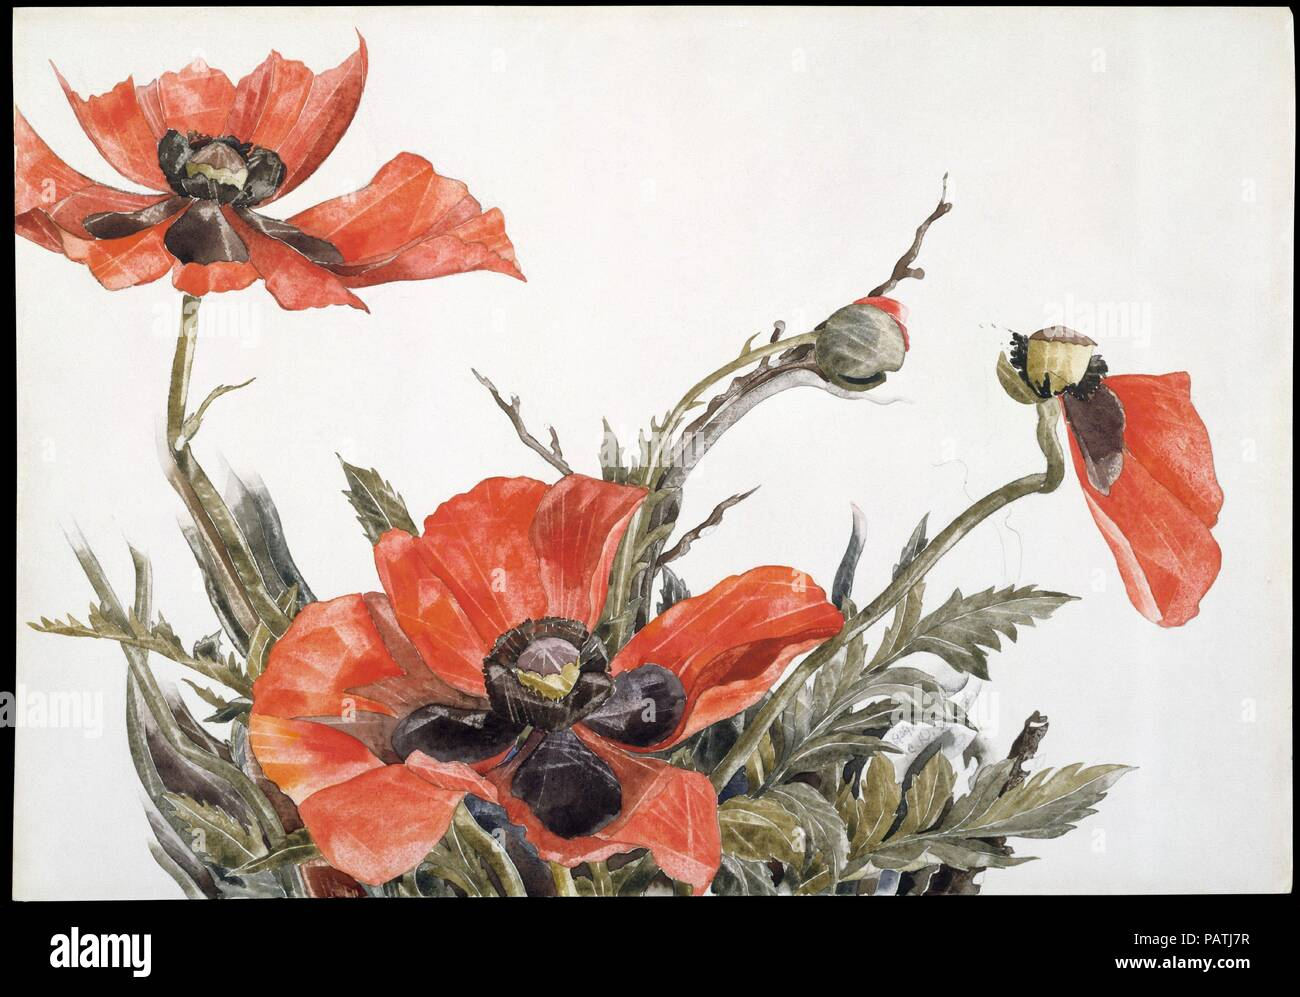 788f99b958 Coquelicots rouges. Artiste : Charles Demuth (American, Lancaster,  Pennsylvanie 1883-1935 Lancaster, Pennsylvanie).